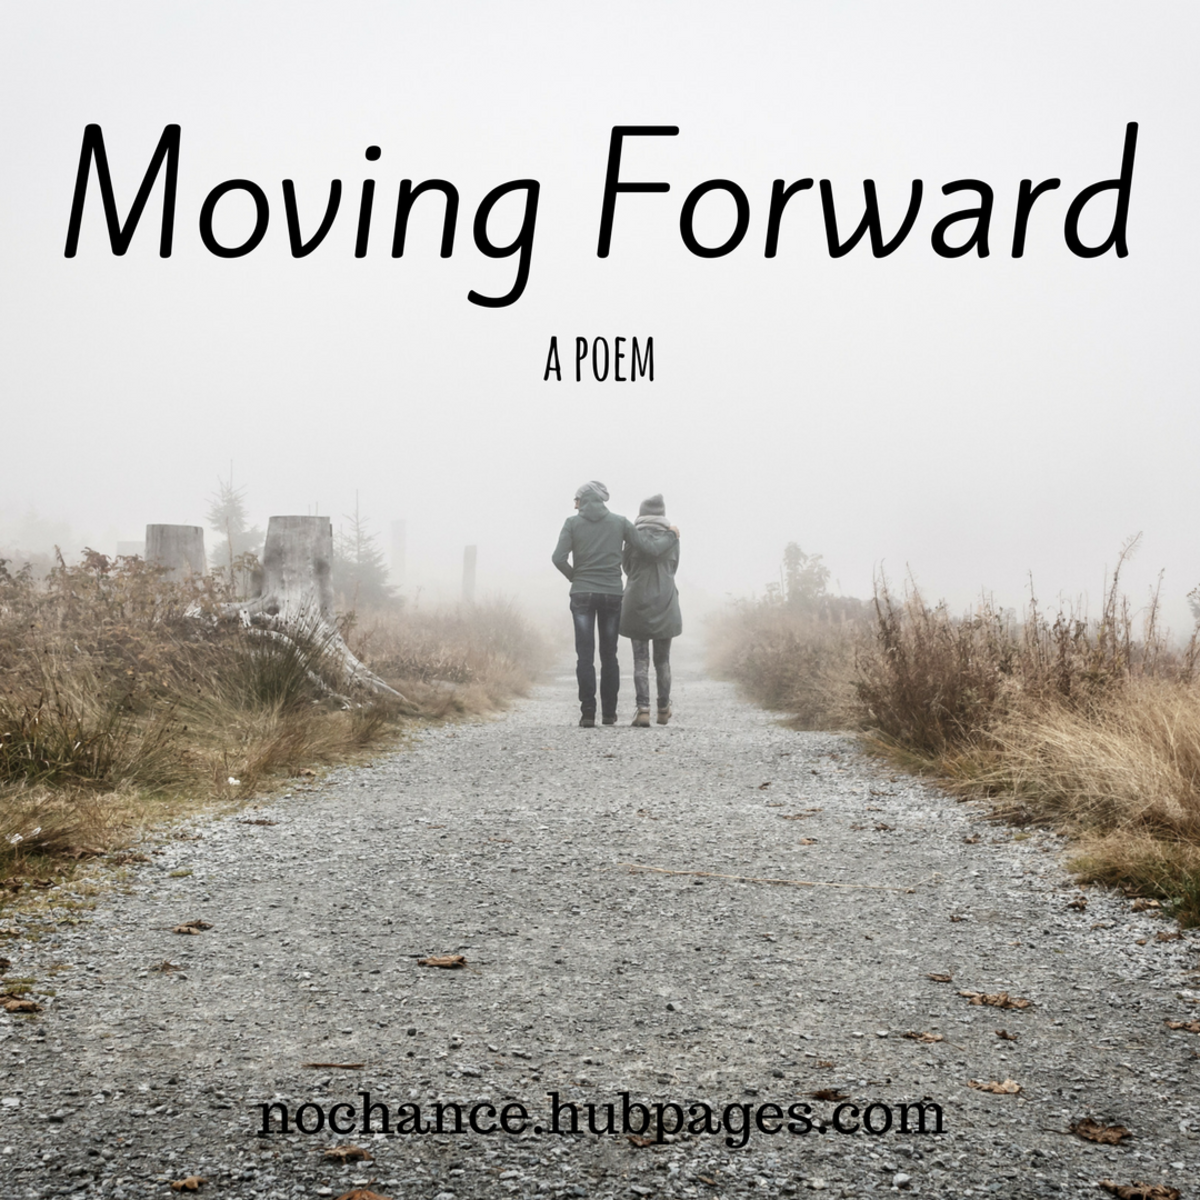 A poem about moving forward in your life.